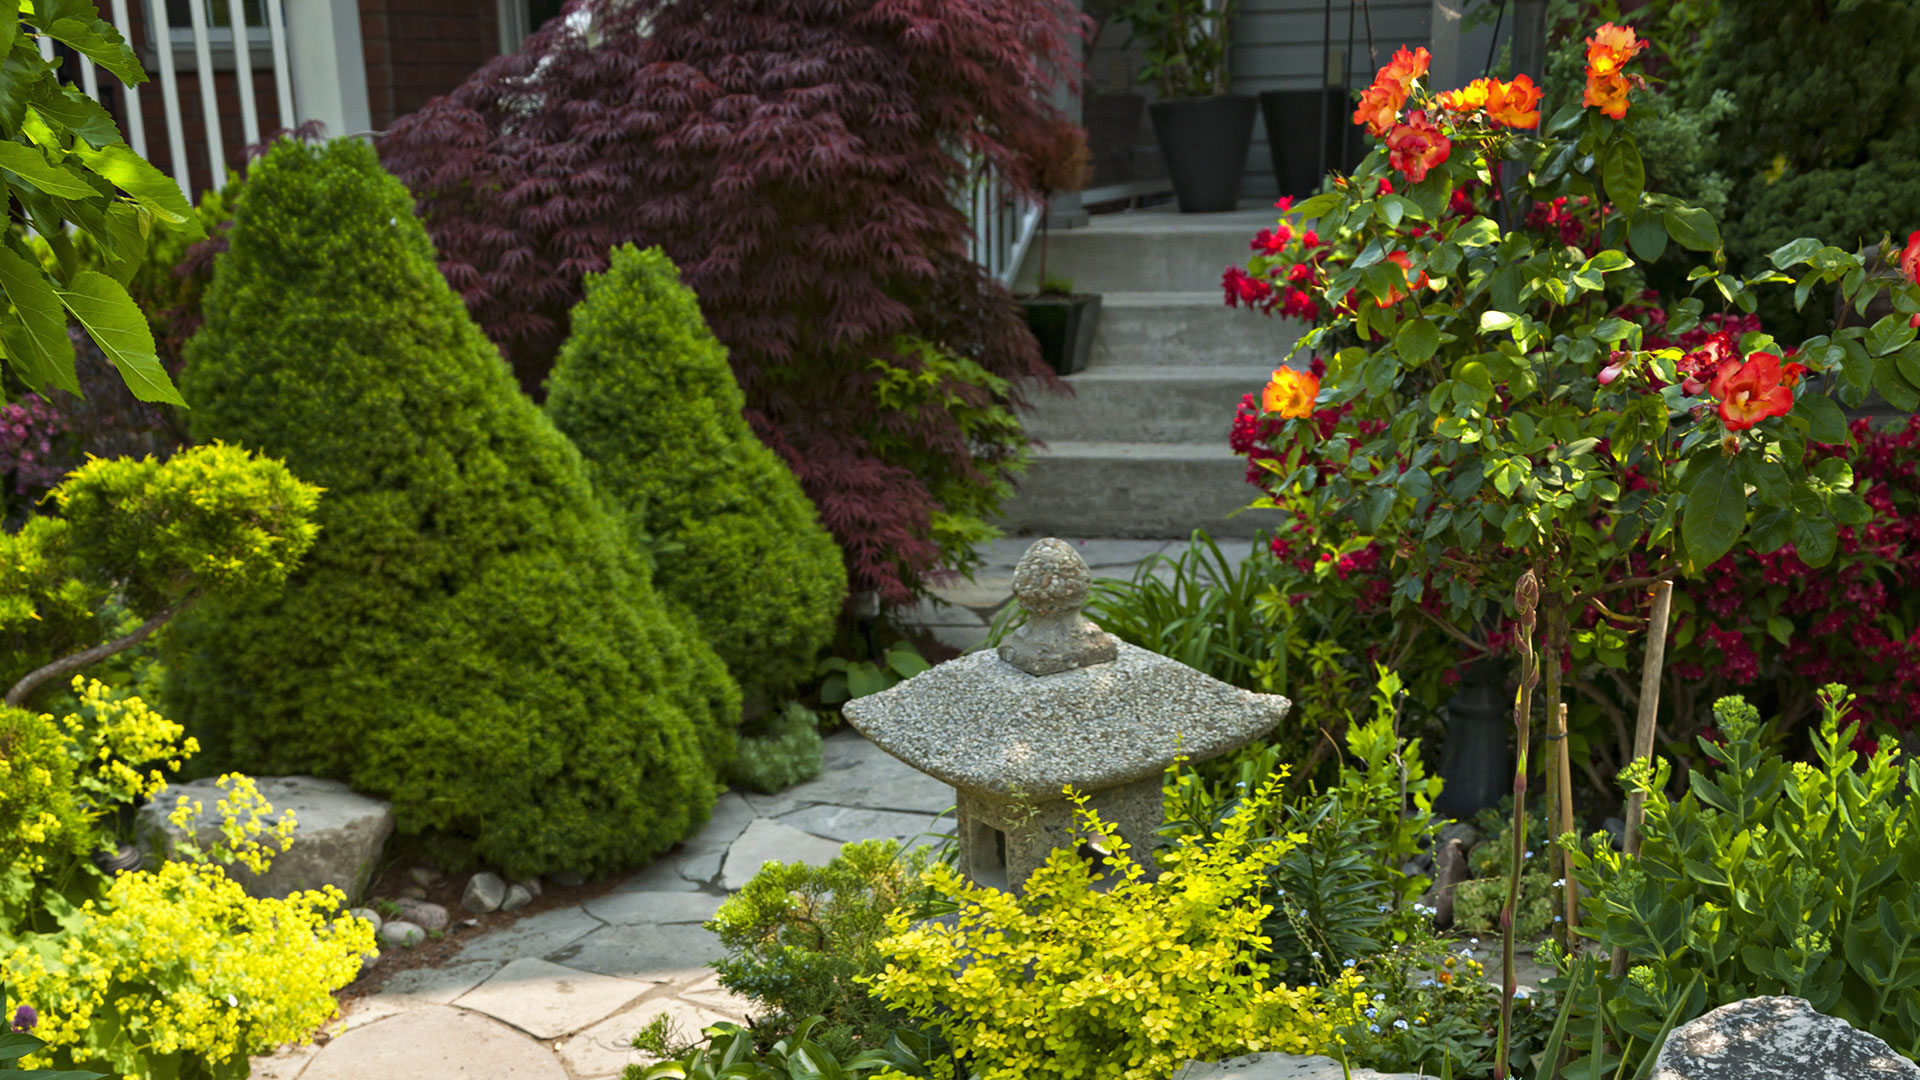 Gregory Lawn & Landscape Landscaping Company, Landscaper and Lawn Care Services slide 1